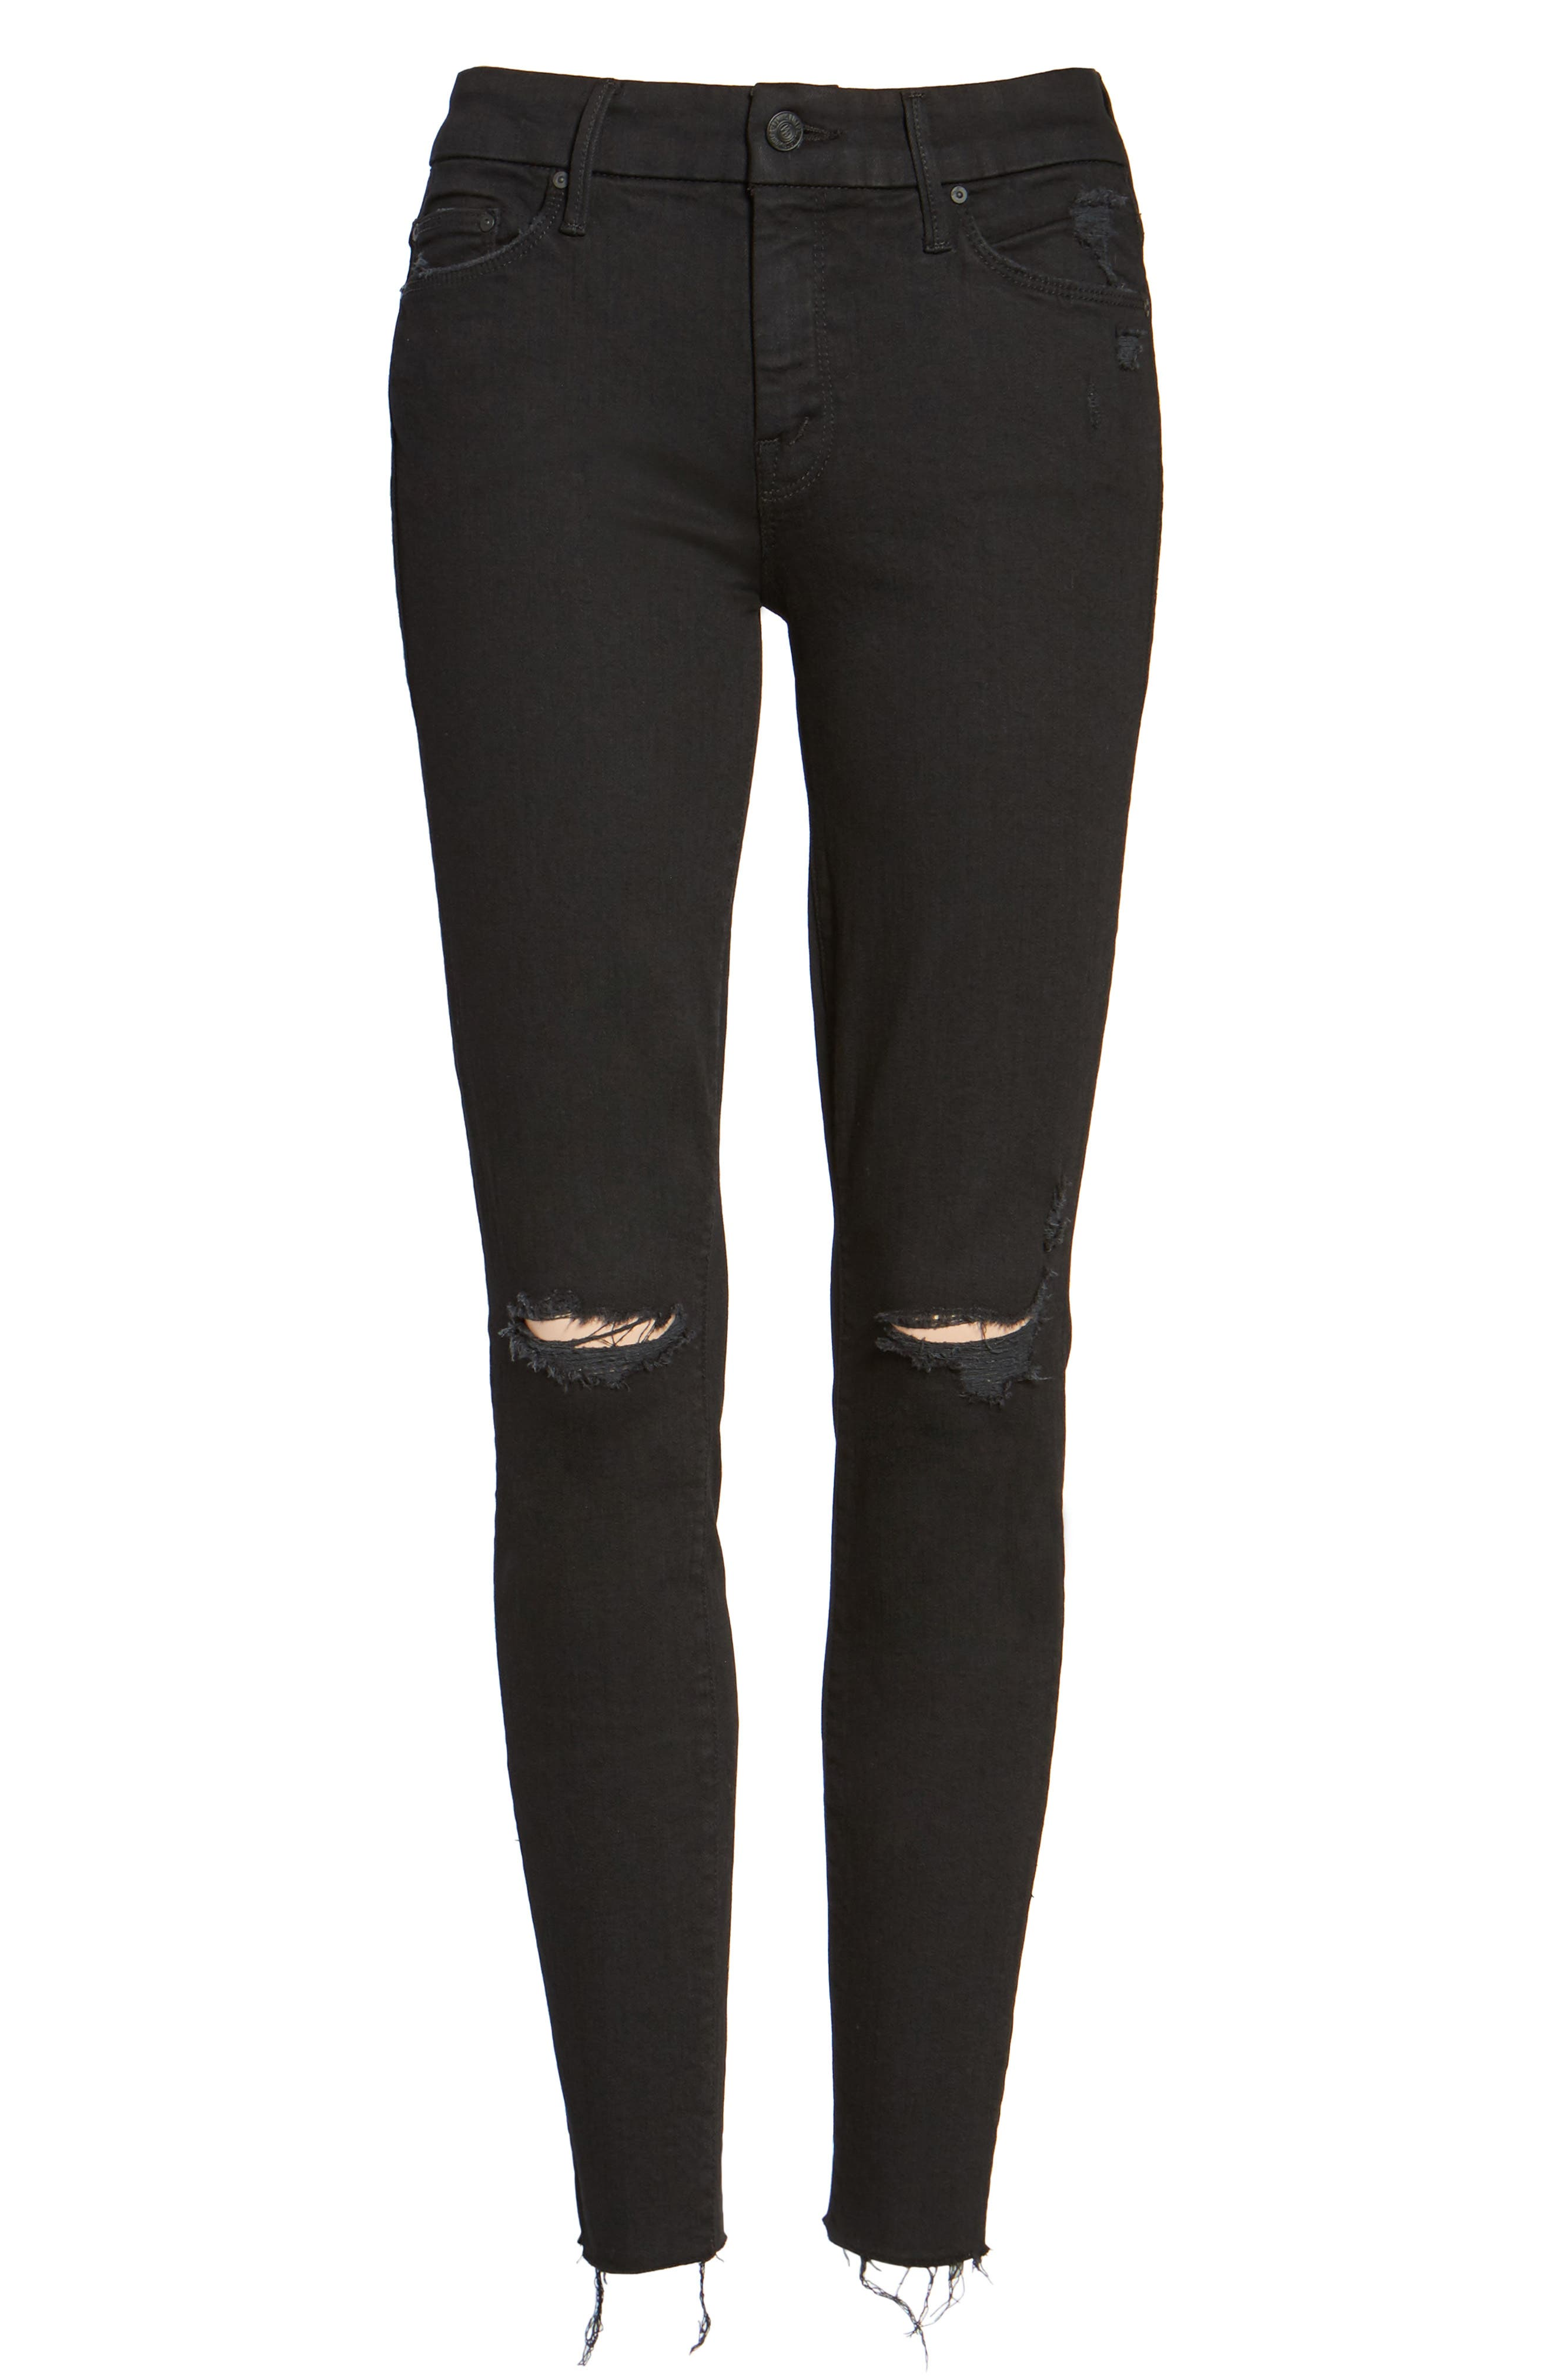 'The Looker' Frayed Ankle Skinny Jeans,                             Alternate thumbnail 2, color,                             GUILTY AS SIN